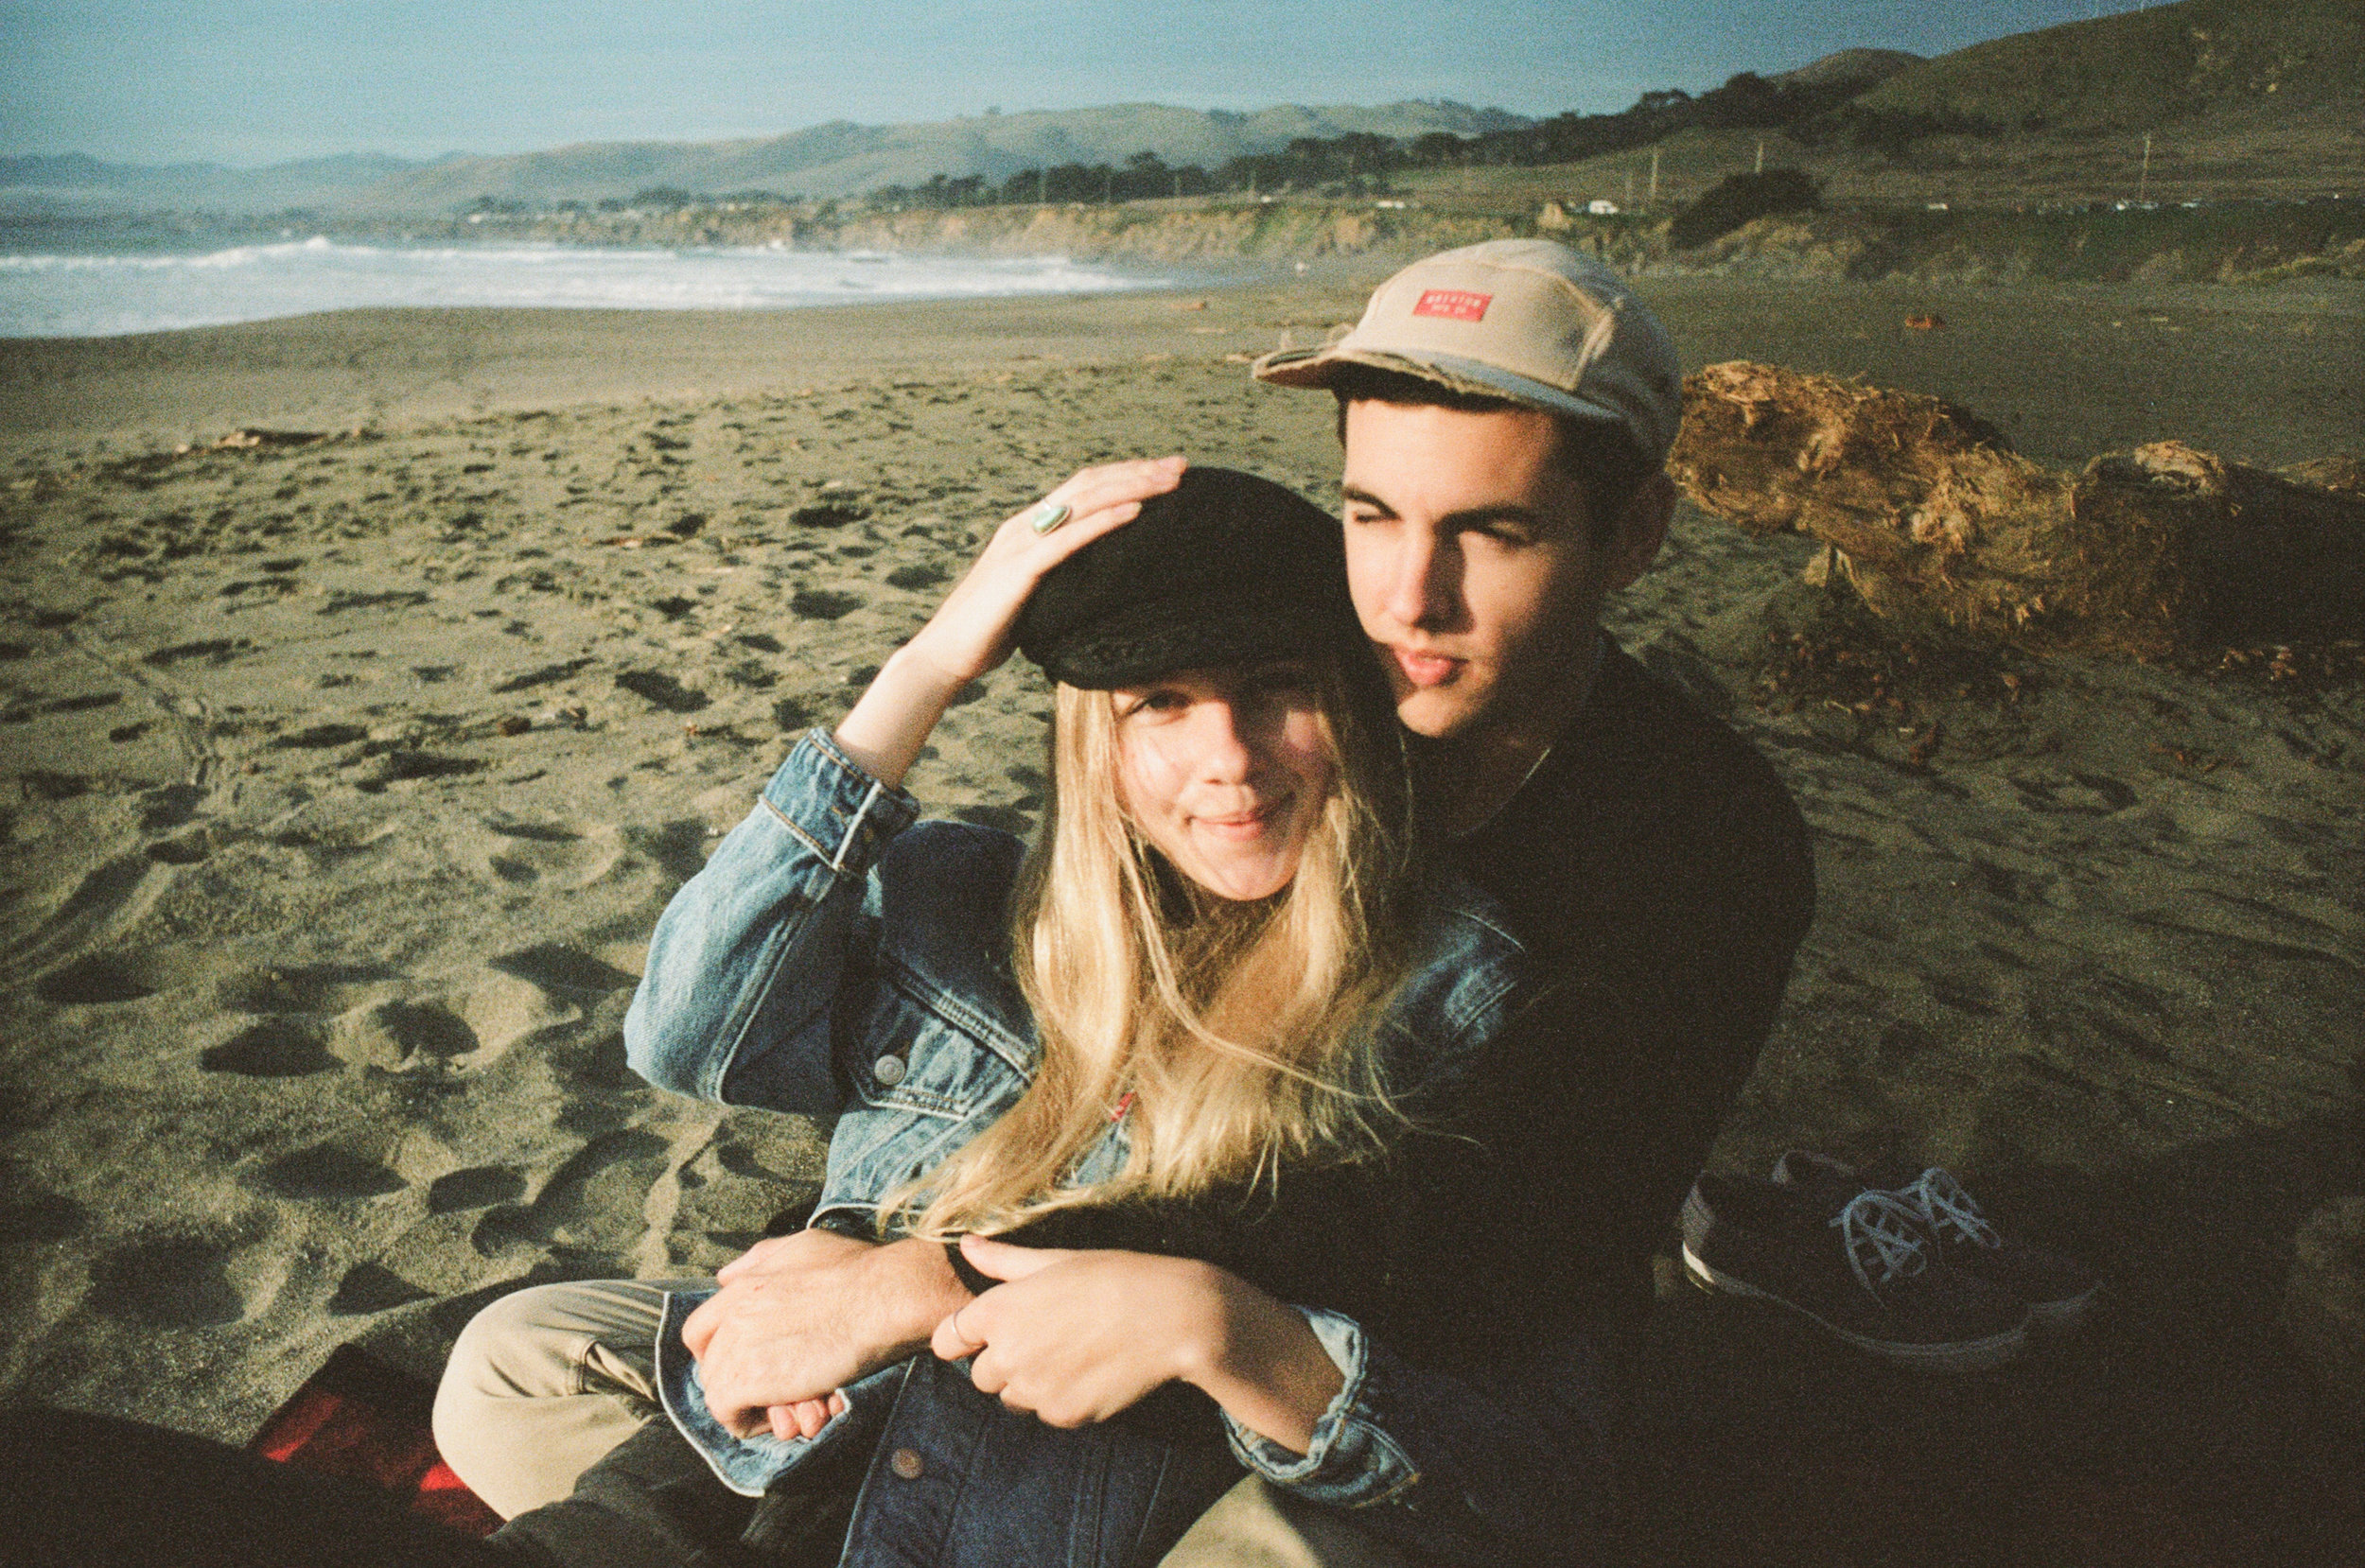 hannah&cole-california-film-jan2019-peytoncurry-000098780009.jpg